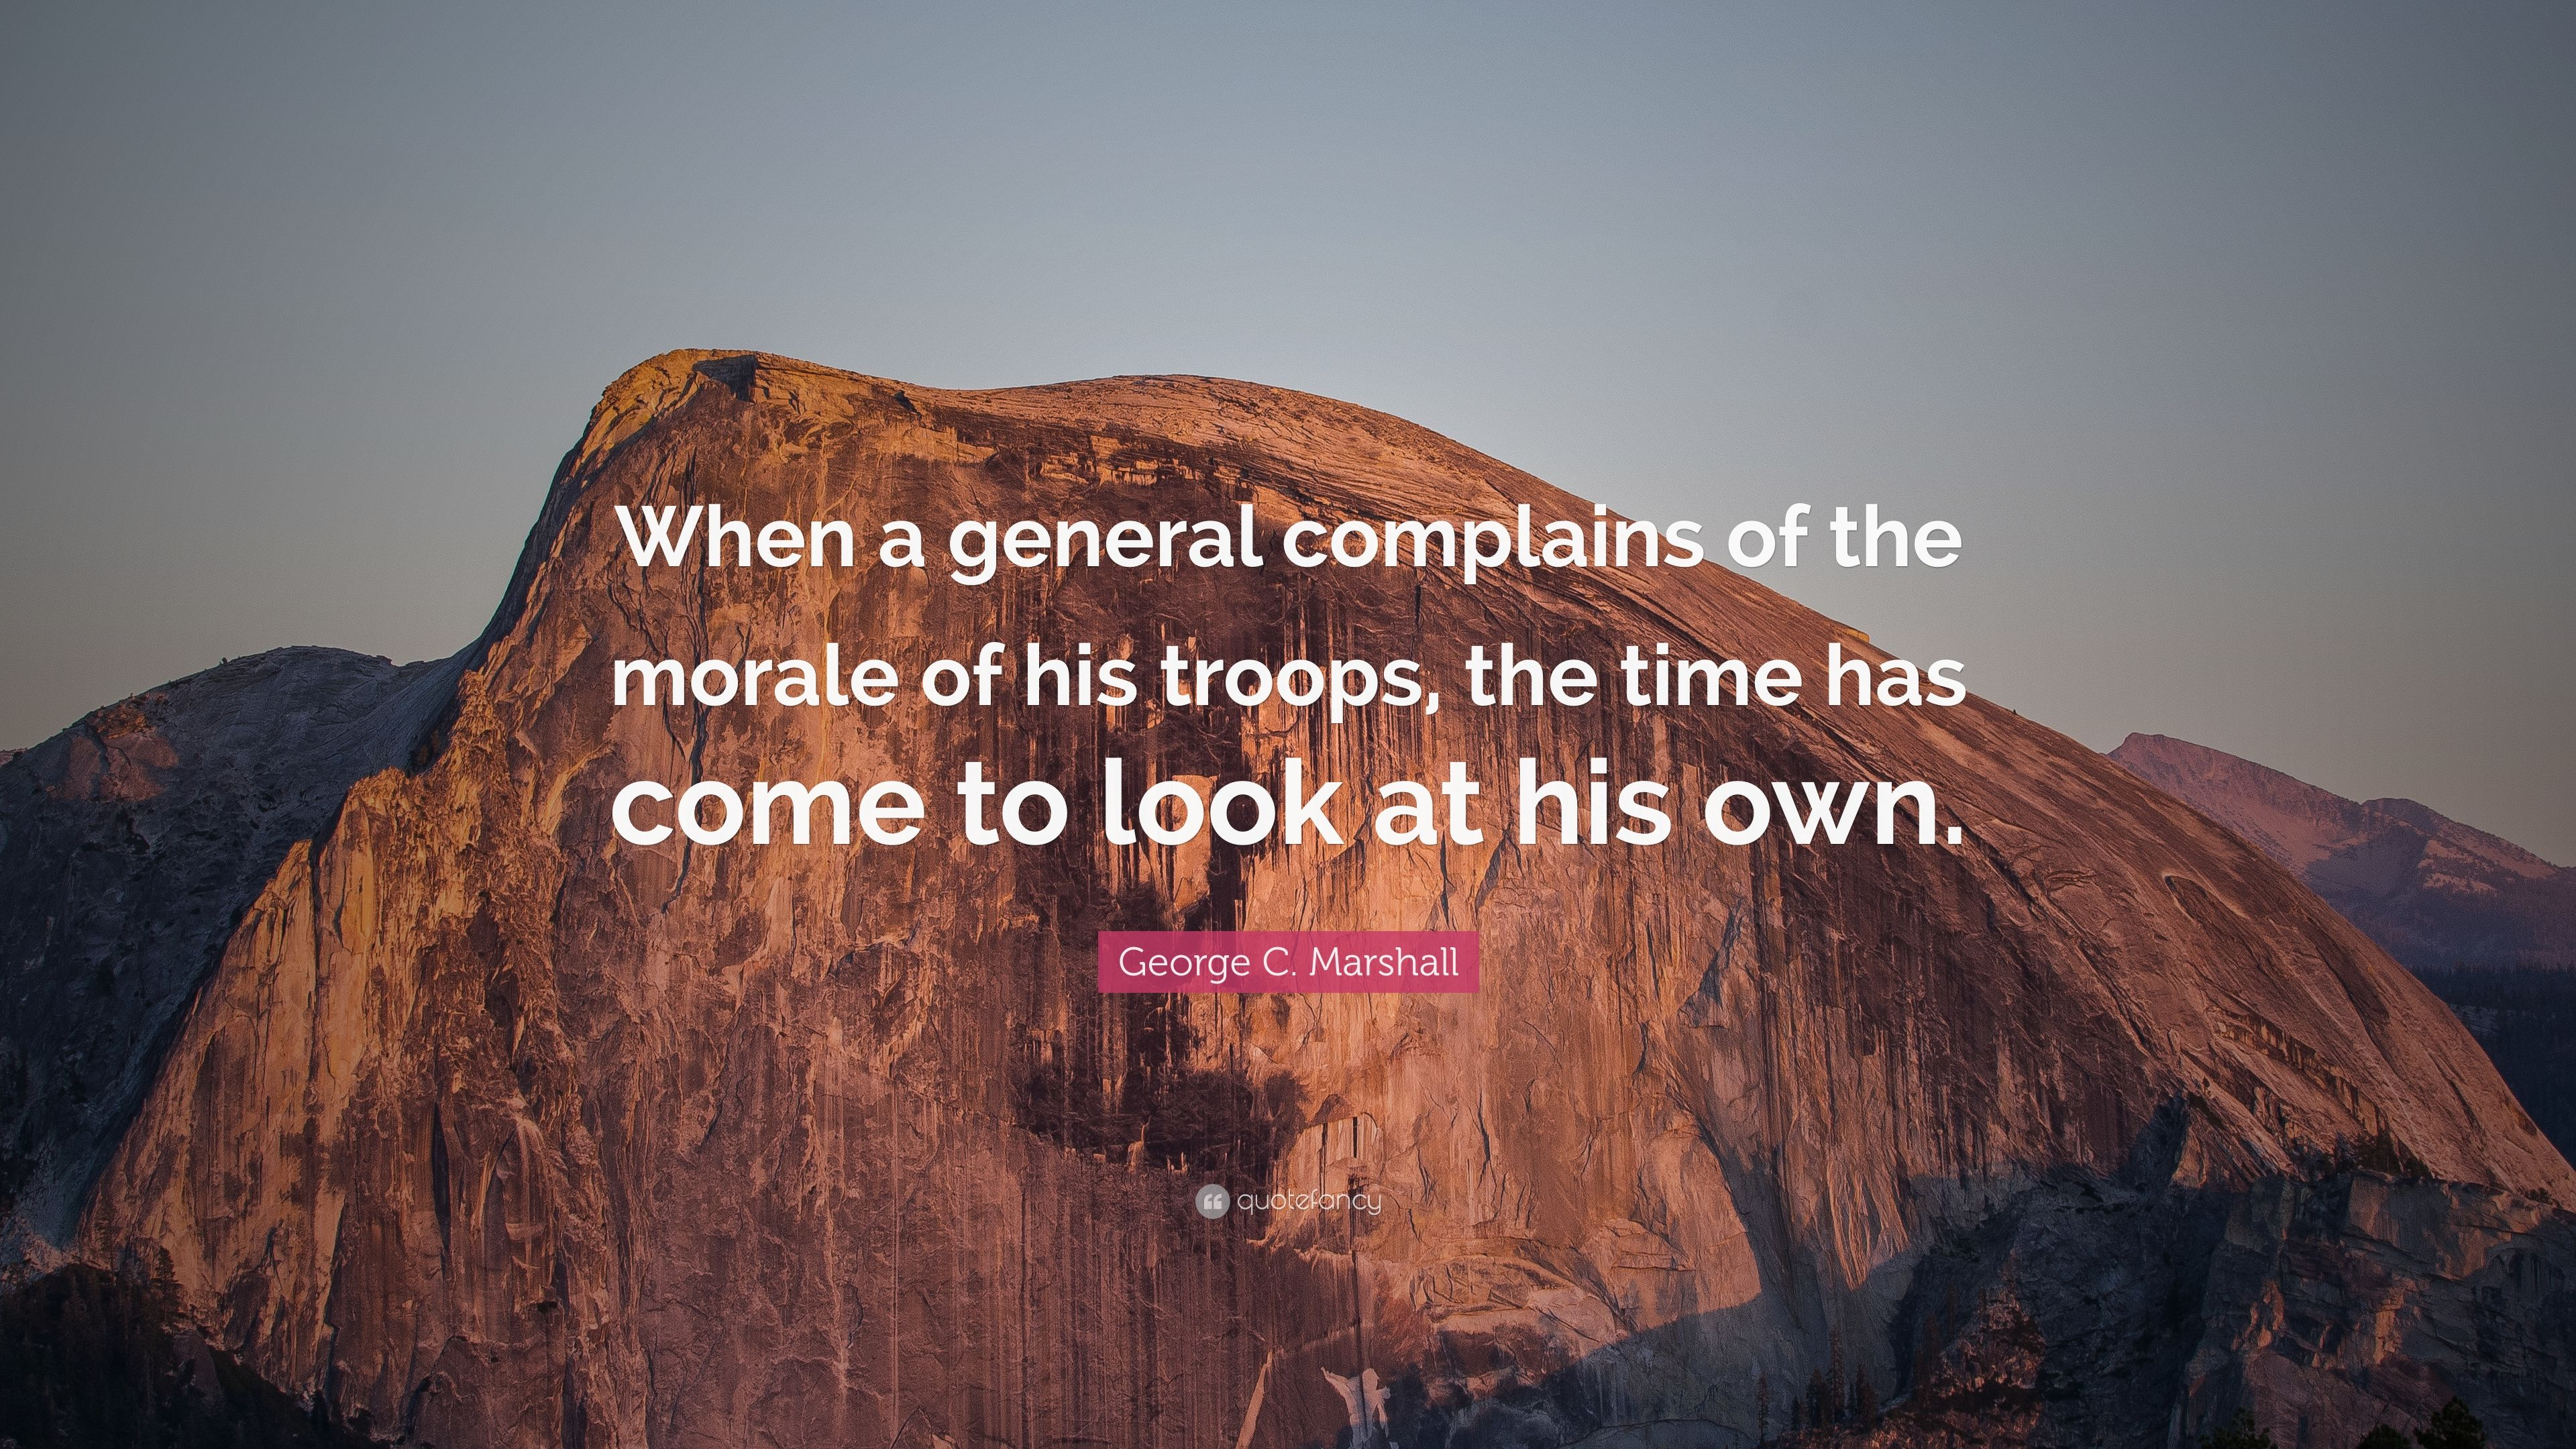 General george c marshall quotes - George C Marshall Quote When A General Complains Of The Morale Of His